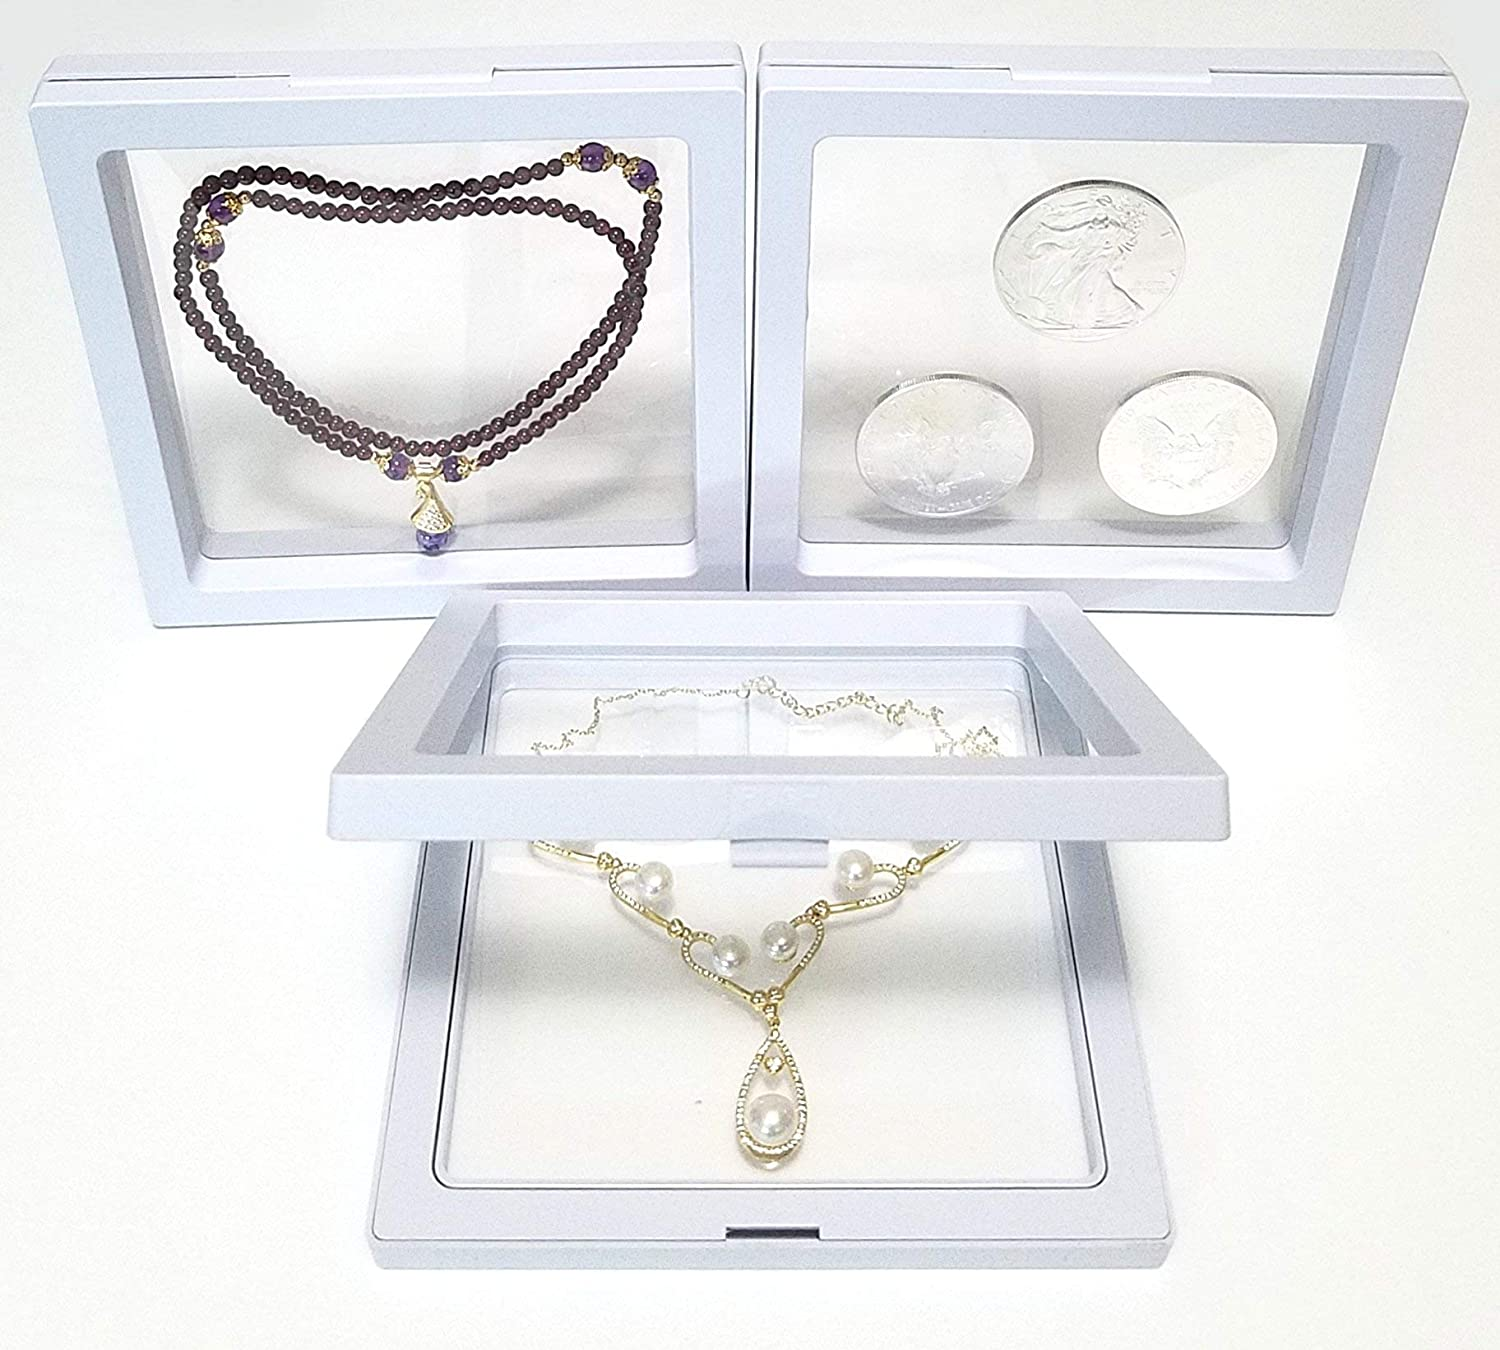 Jewelry Gift JM Large 5.5 x 5.5 x 0.75 Inches Transparent 3D Floating Frame Display Holder//Box//Frames for Challenge Coins Antique White AA Medallions